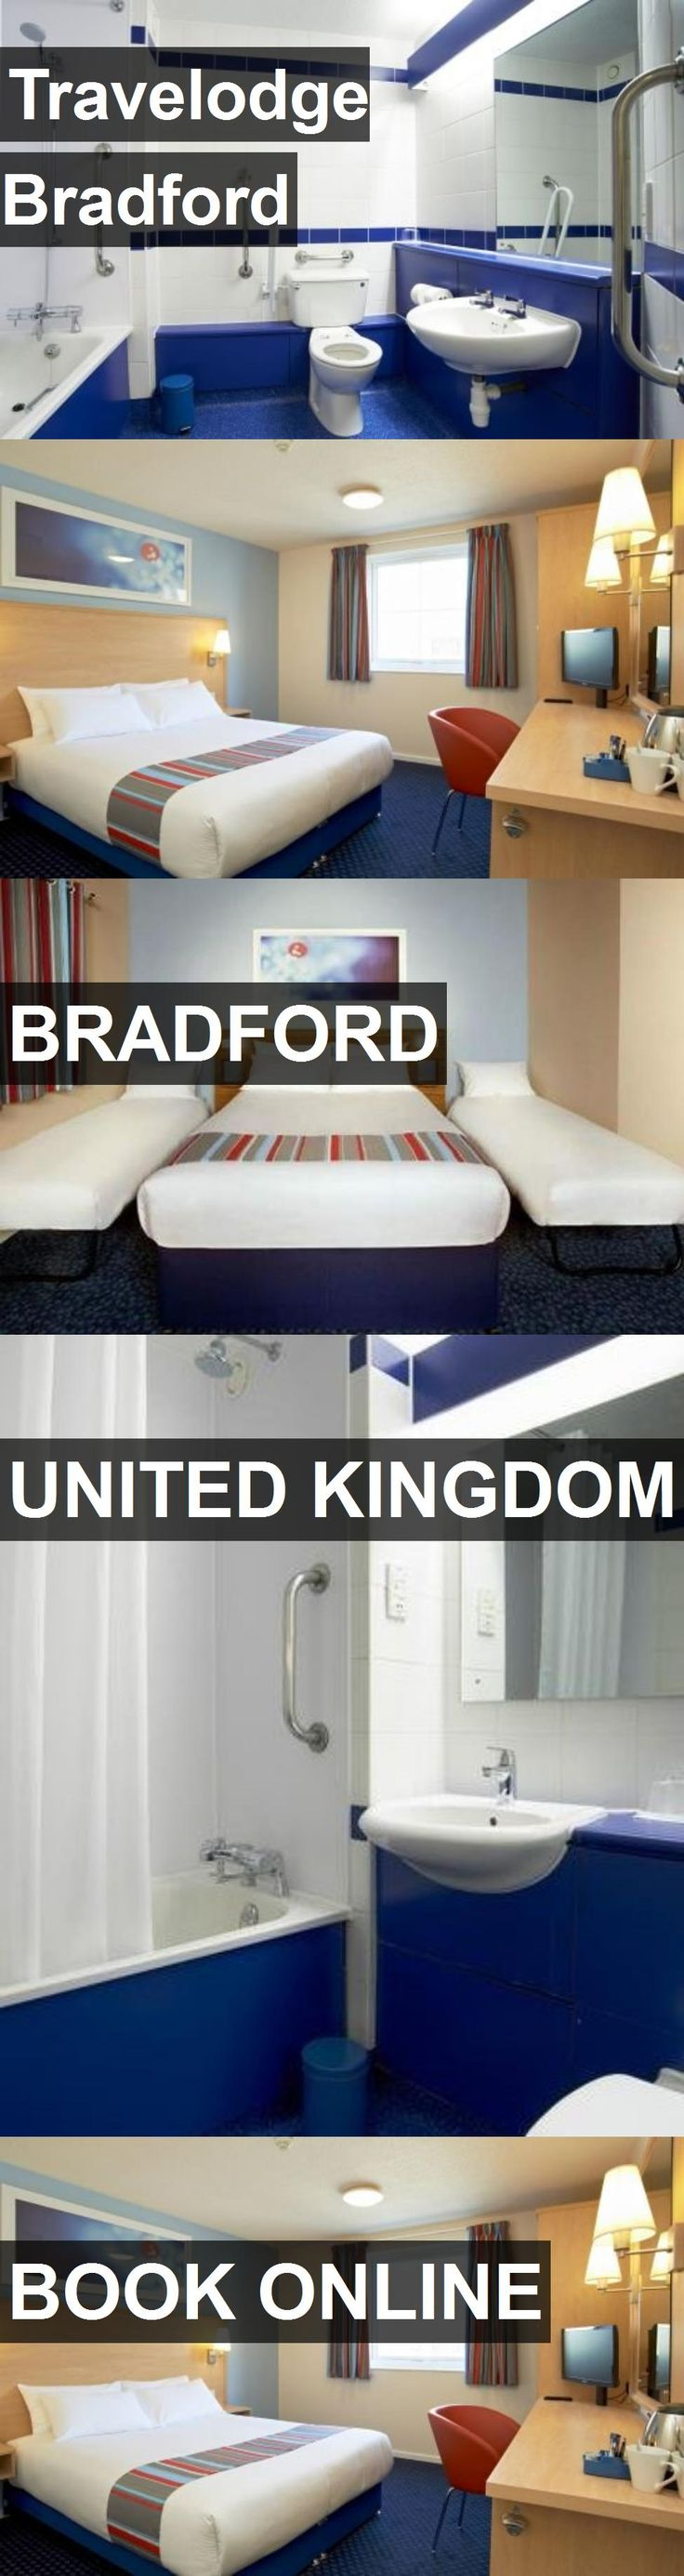 Hotel Travelodge Bradford in Bradford, United Kingdom. For more information, photos, reviews and best prices please follow the link. #UnitedKingdom #Bradford #TravelodgeBradford #hotel #travel #vacation